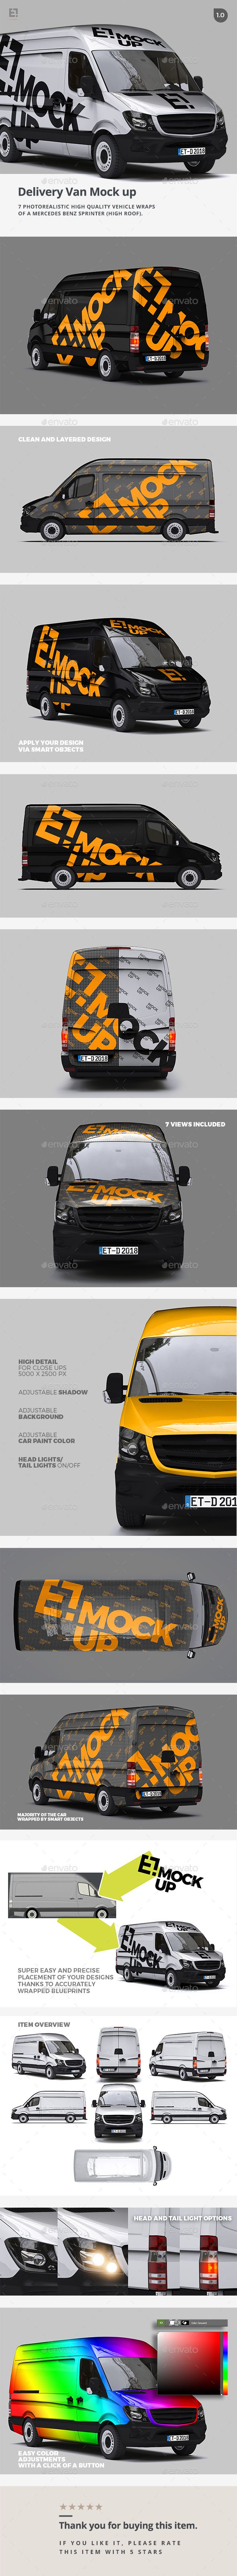 Delivery Van Mock up — Photoshop PSD #airport #transport • Download ➝ https://graphicriver.net/item/delivery-van-mock-up/19802539?ref=pxcr